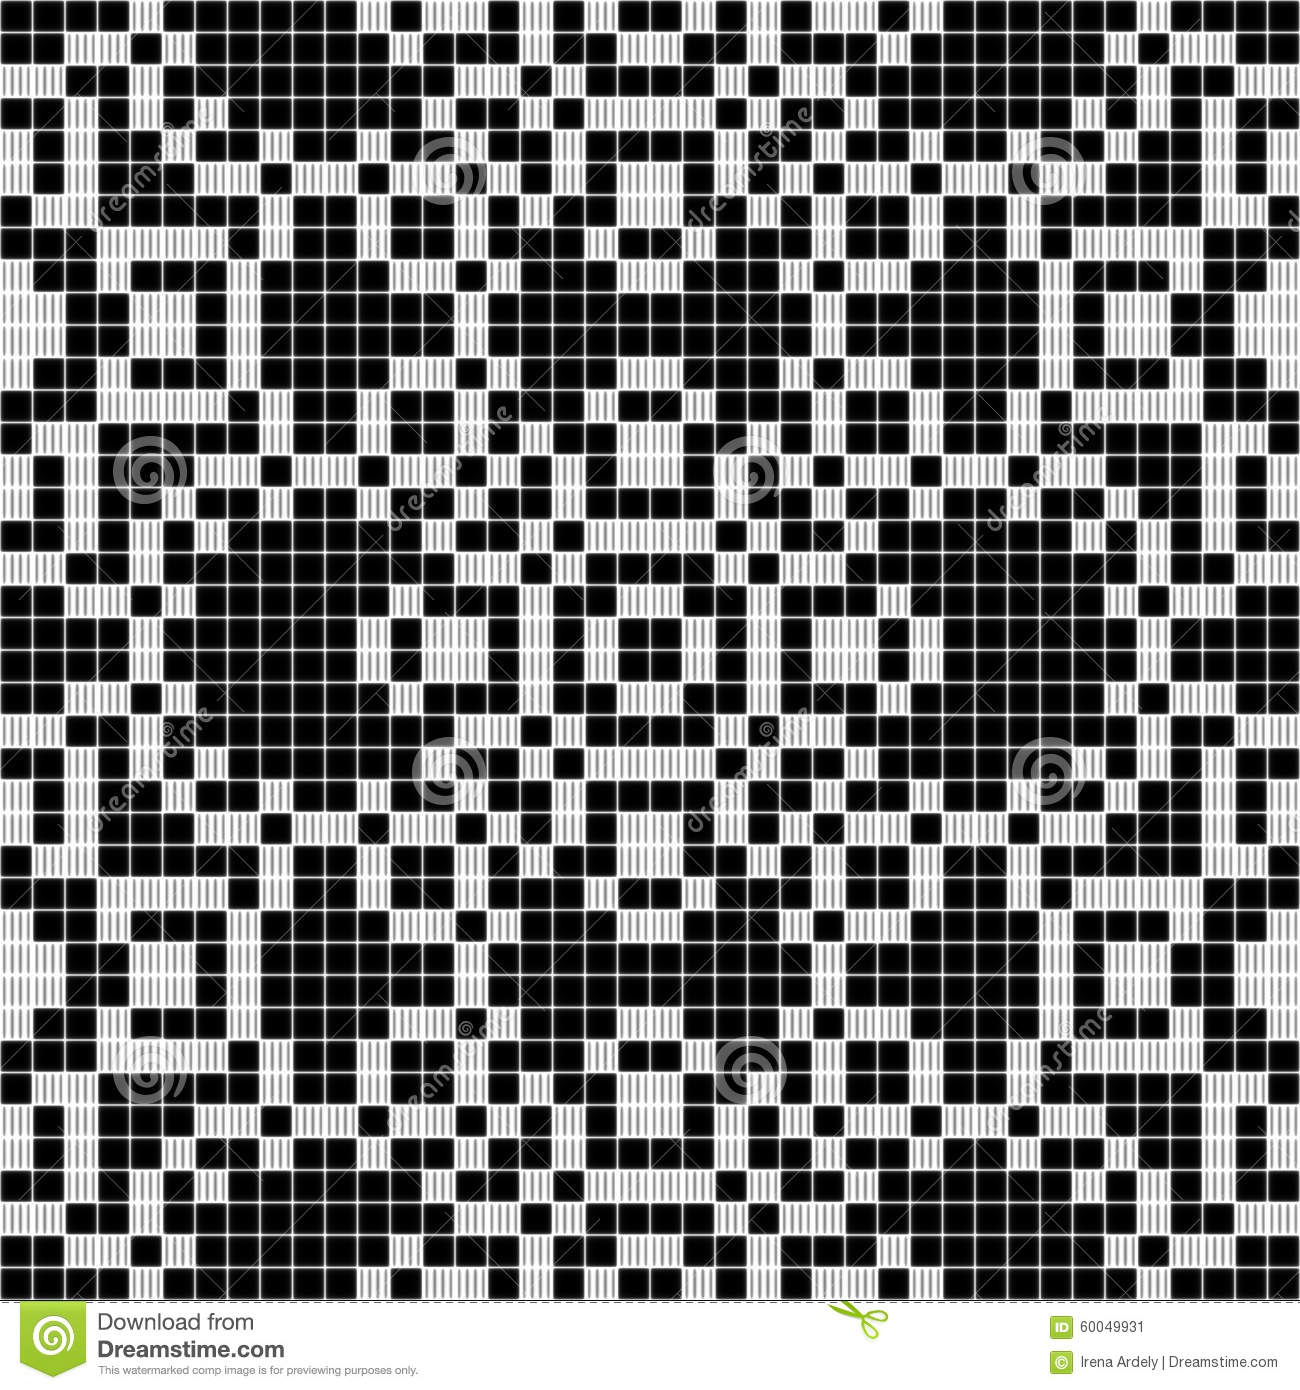 Black Curtain Texture curtain lace seamless pattern texture - black and white stock